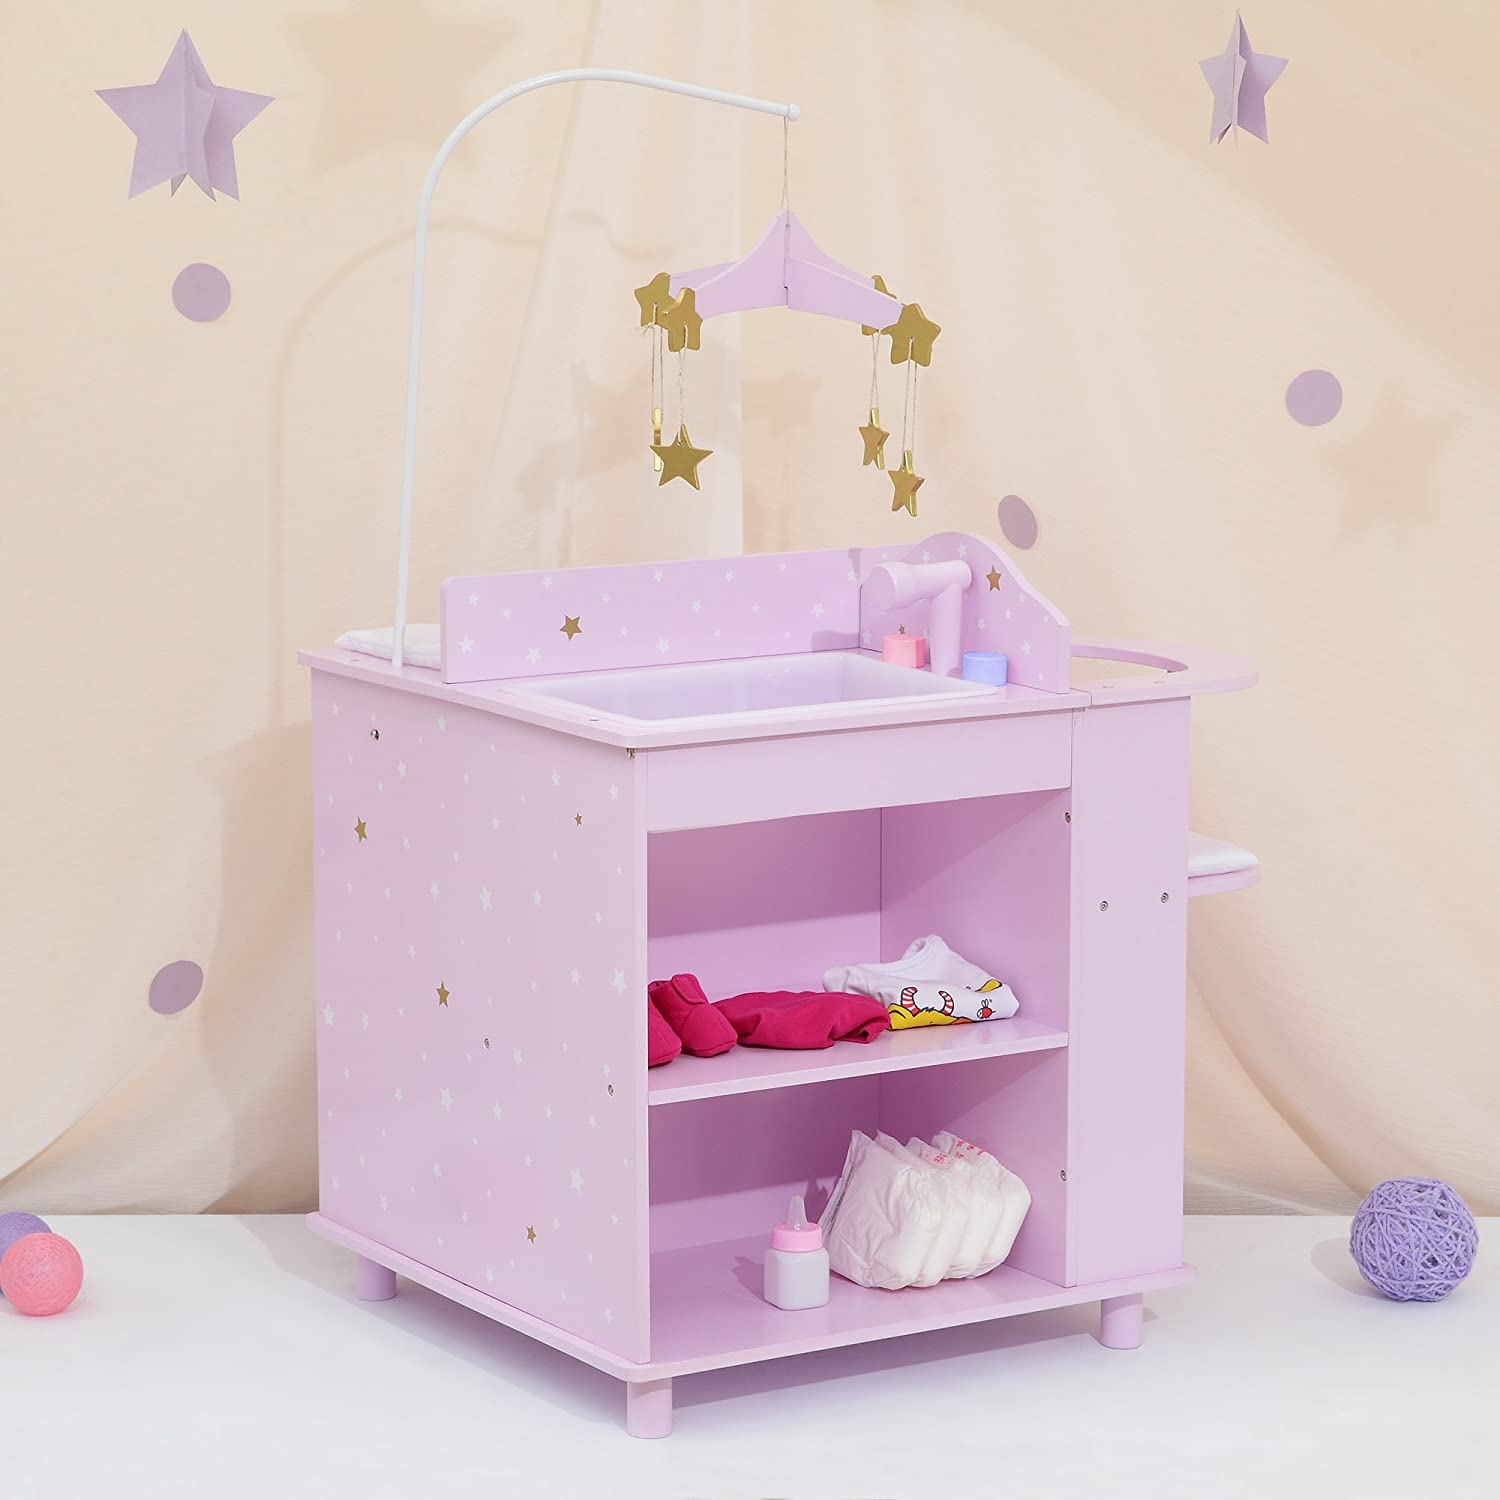 Olivia's Little World - Twinkle Stars Princess Baby Doll Changing Station, Baby Care Activity Center, Role Play Nursery Center with Storage for Dolls Accessories - Purple & Stars